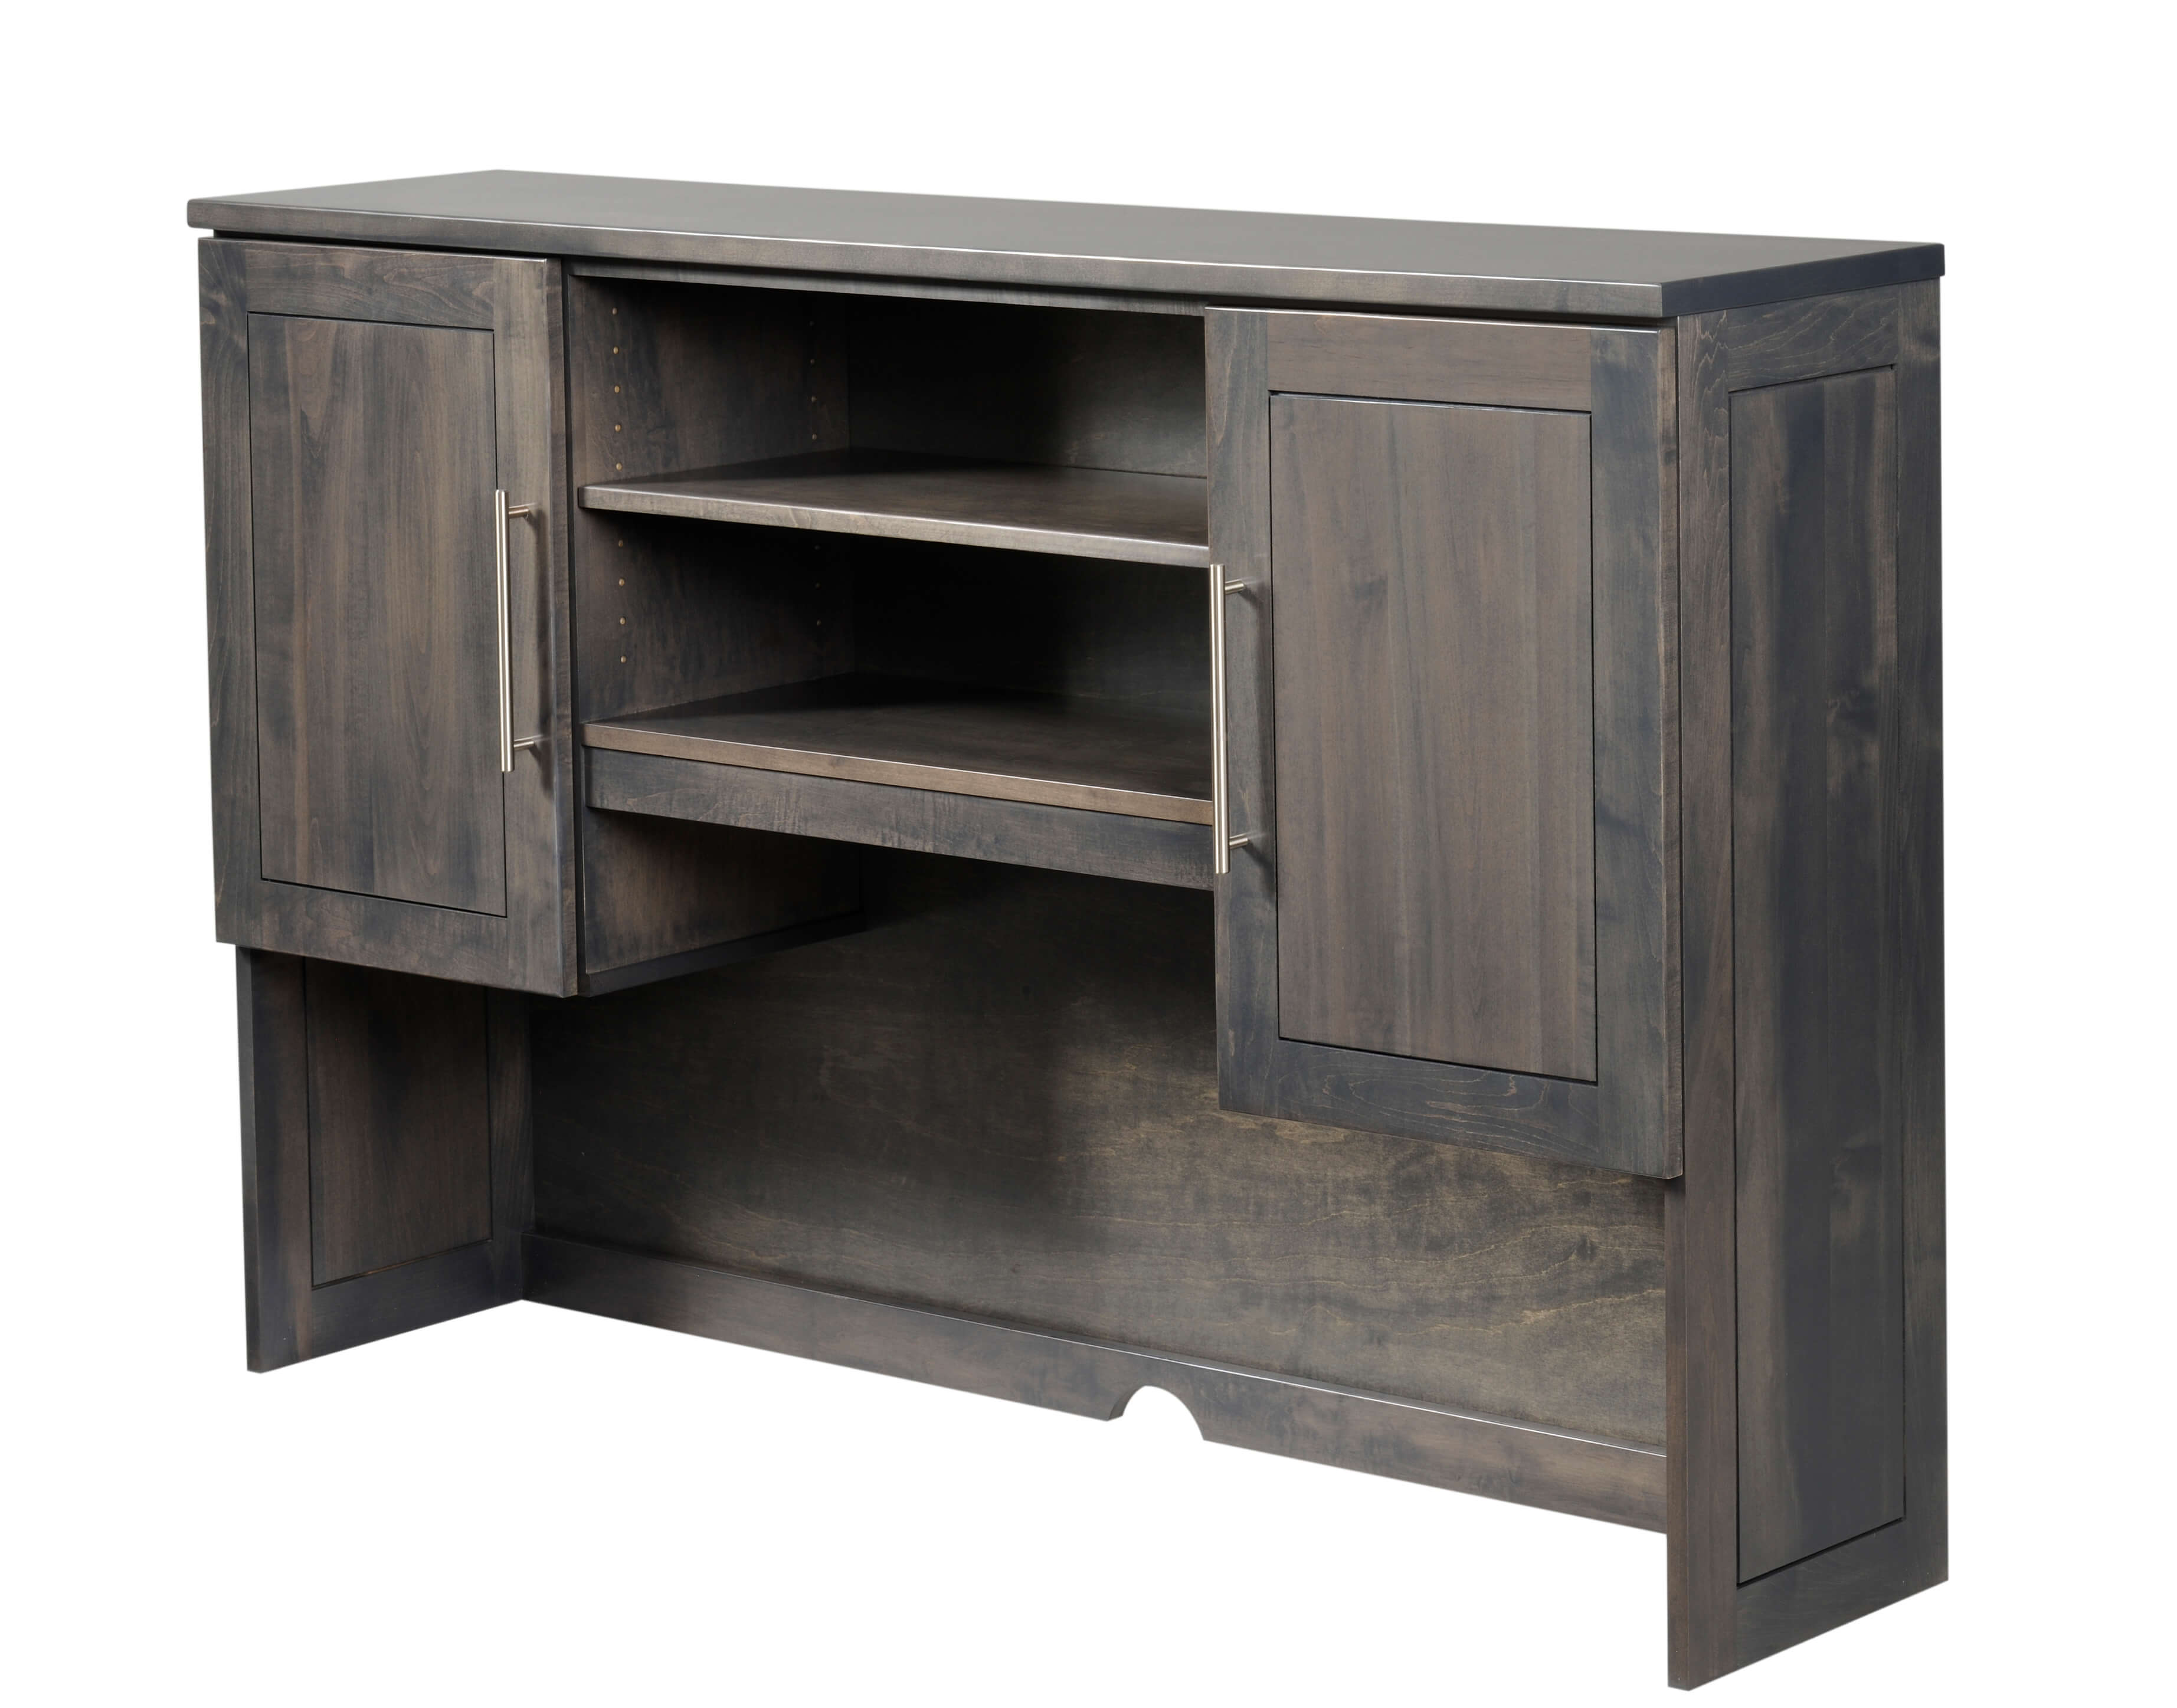 The Amish Home Furniture Gallery|Urban Office Furniture